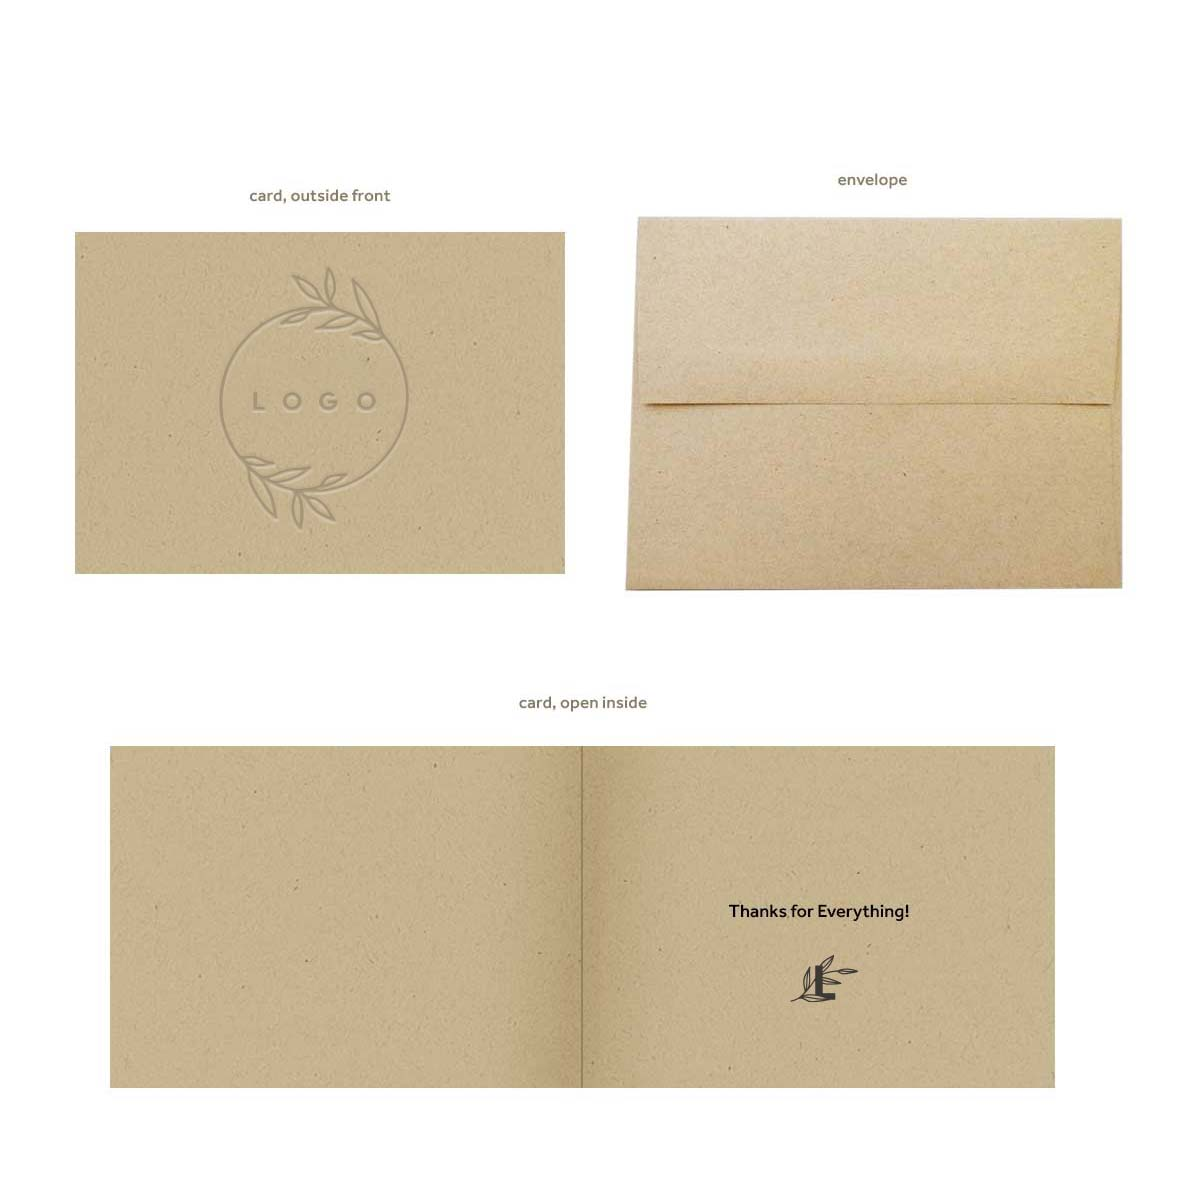 289310 kraft thank you card one location emboss front one color screen inside card blank envelope